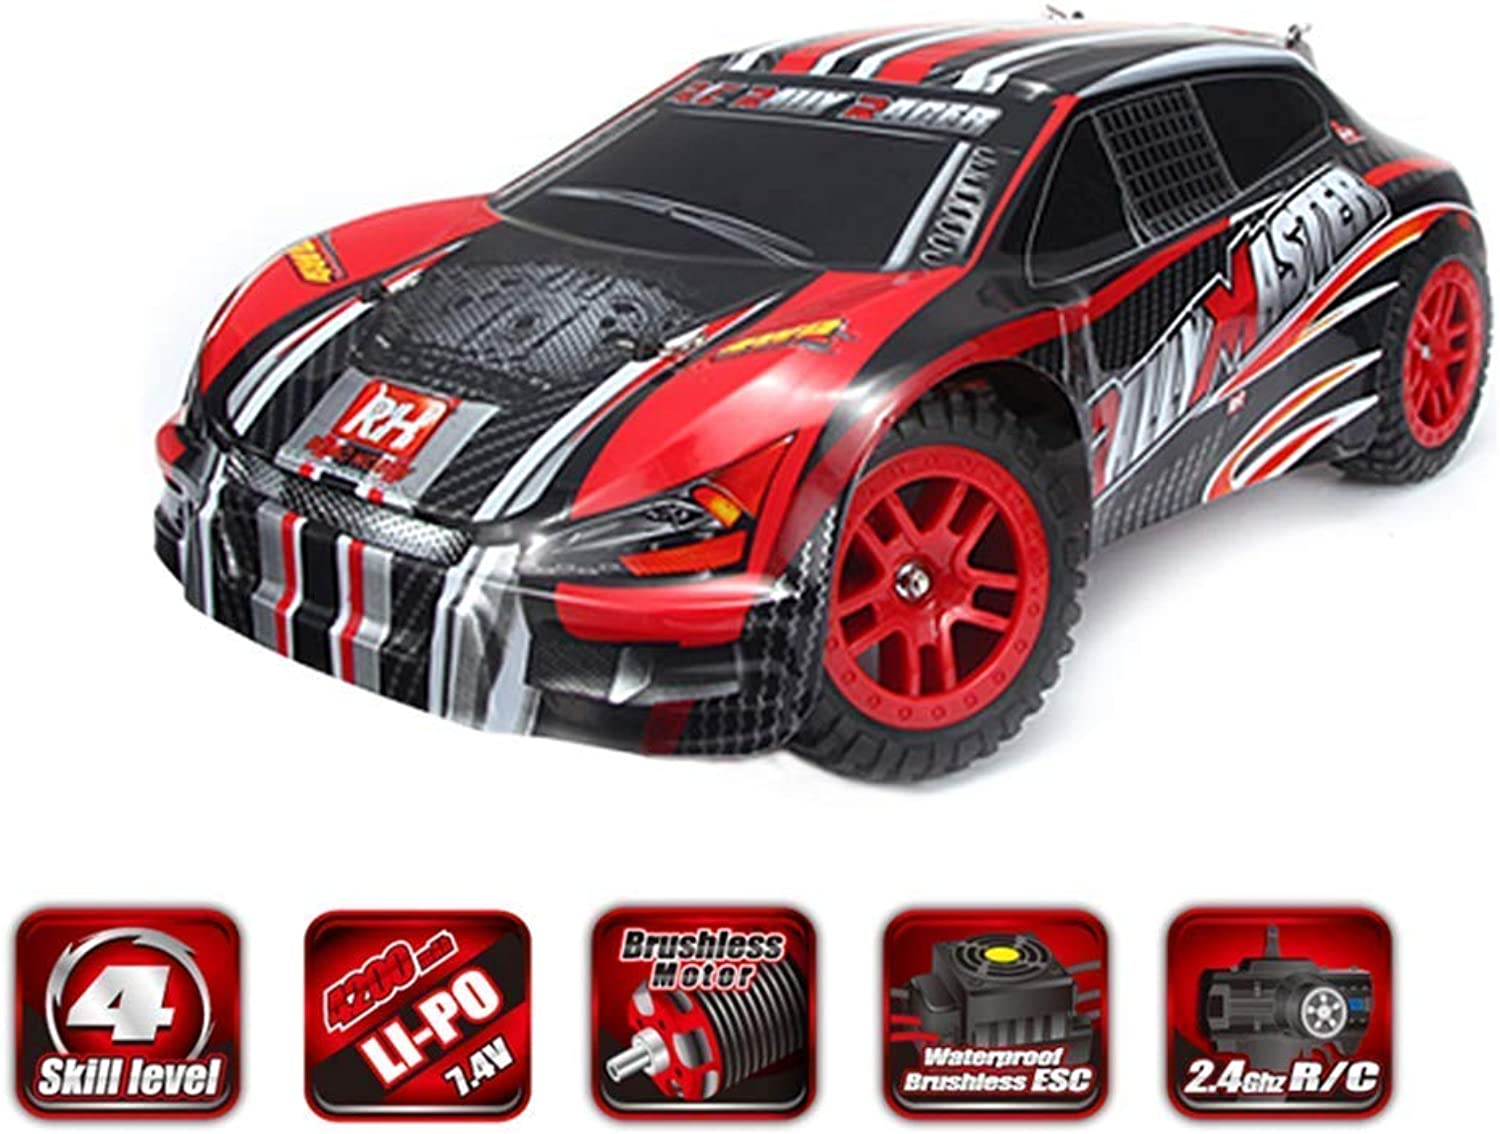 ZQYR GAME  RC Car 4WD 1 8 Scale Scale Scale 2.4Ghz High Speed RC Hobby Vehicle Electric Radio Remote Control Off Road Racing Trucks, Model  8085 e2aa75